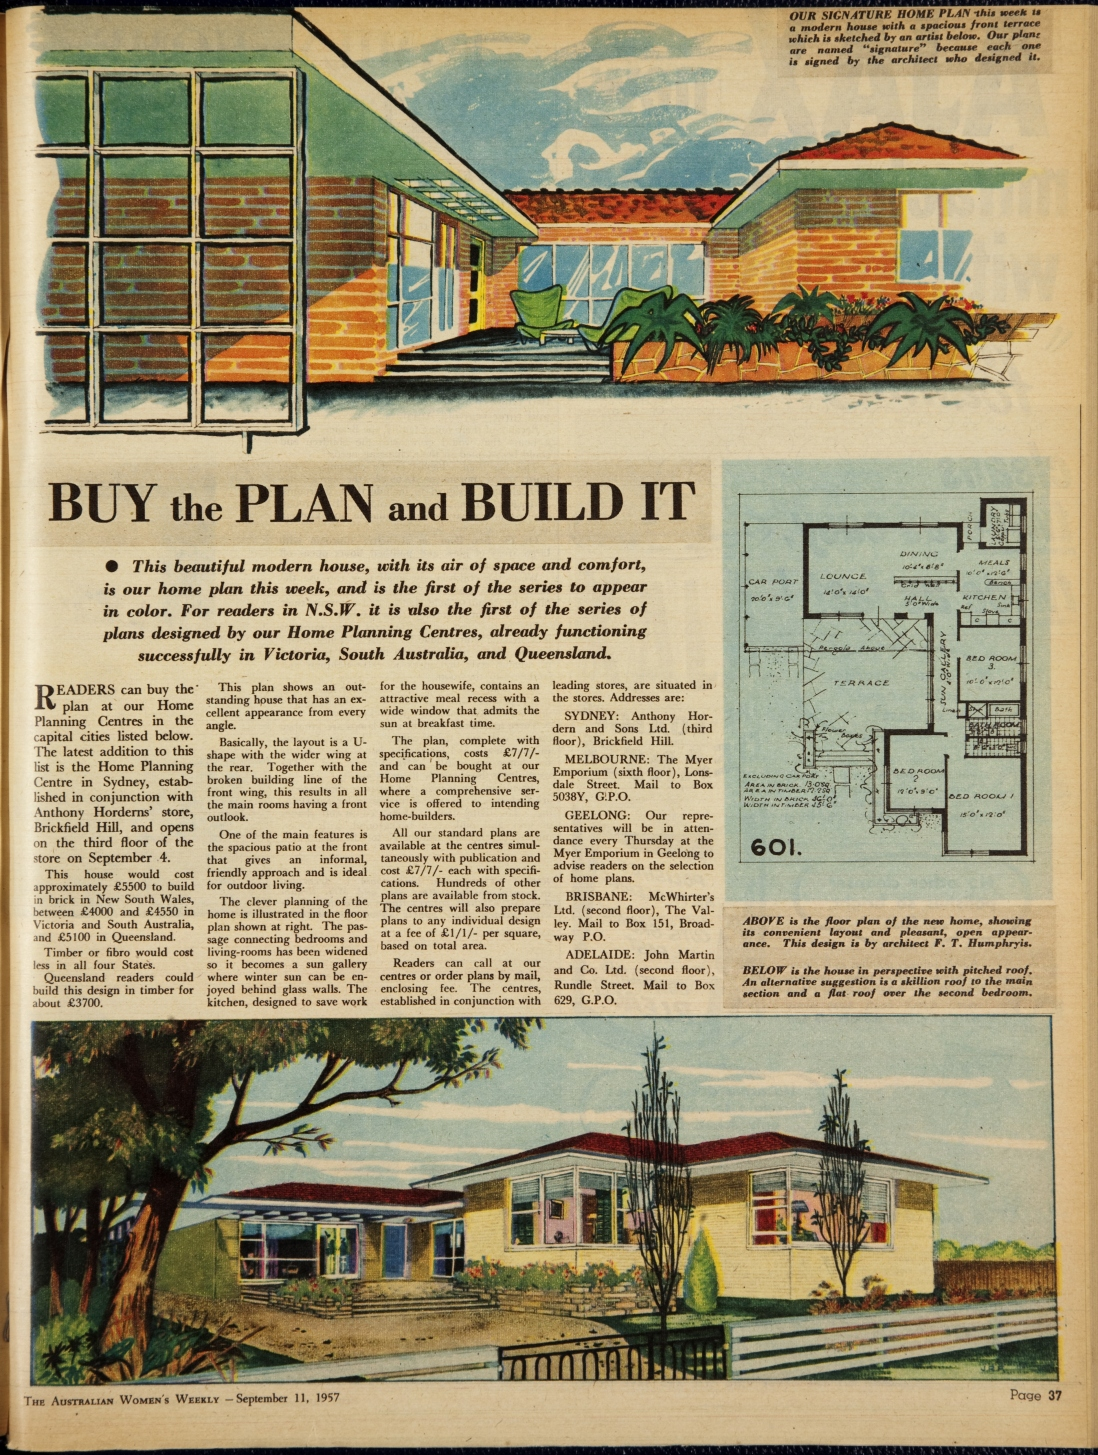 post war sydney home plans 1945 to 1959 sydney living museums page from booklet with two colour house illustrations and a floor plan on a blue background